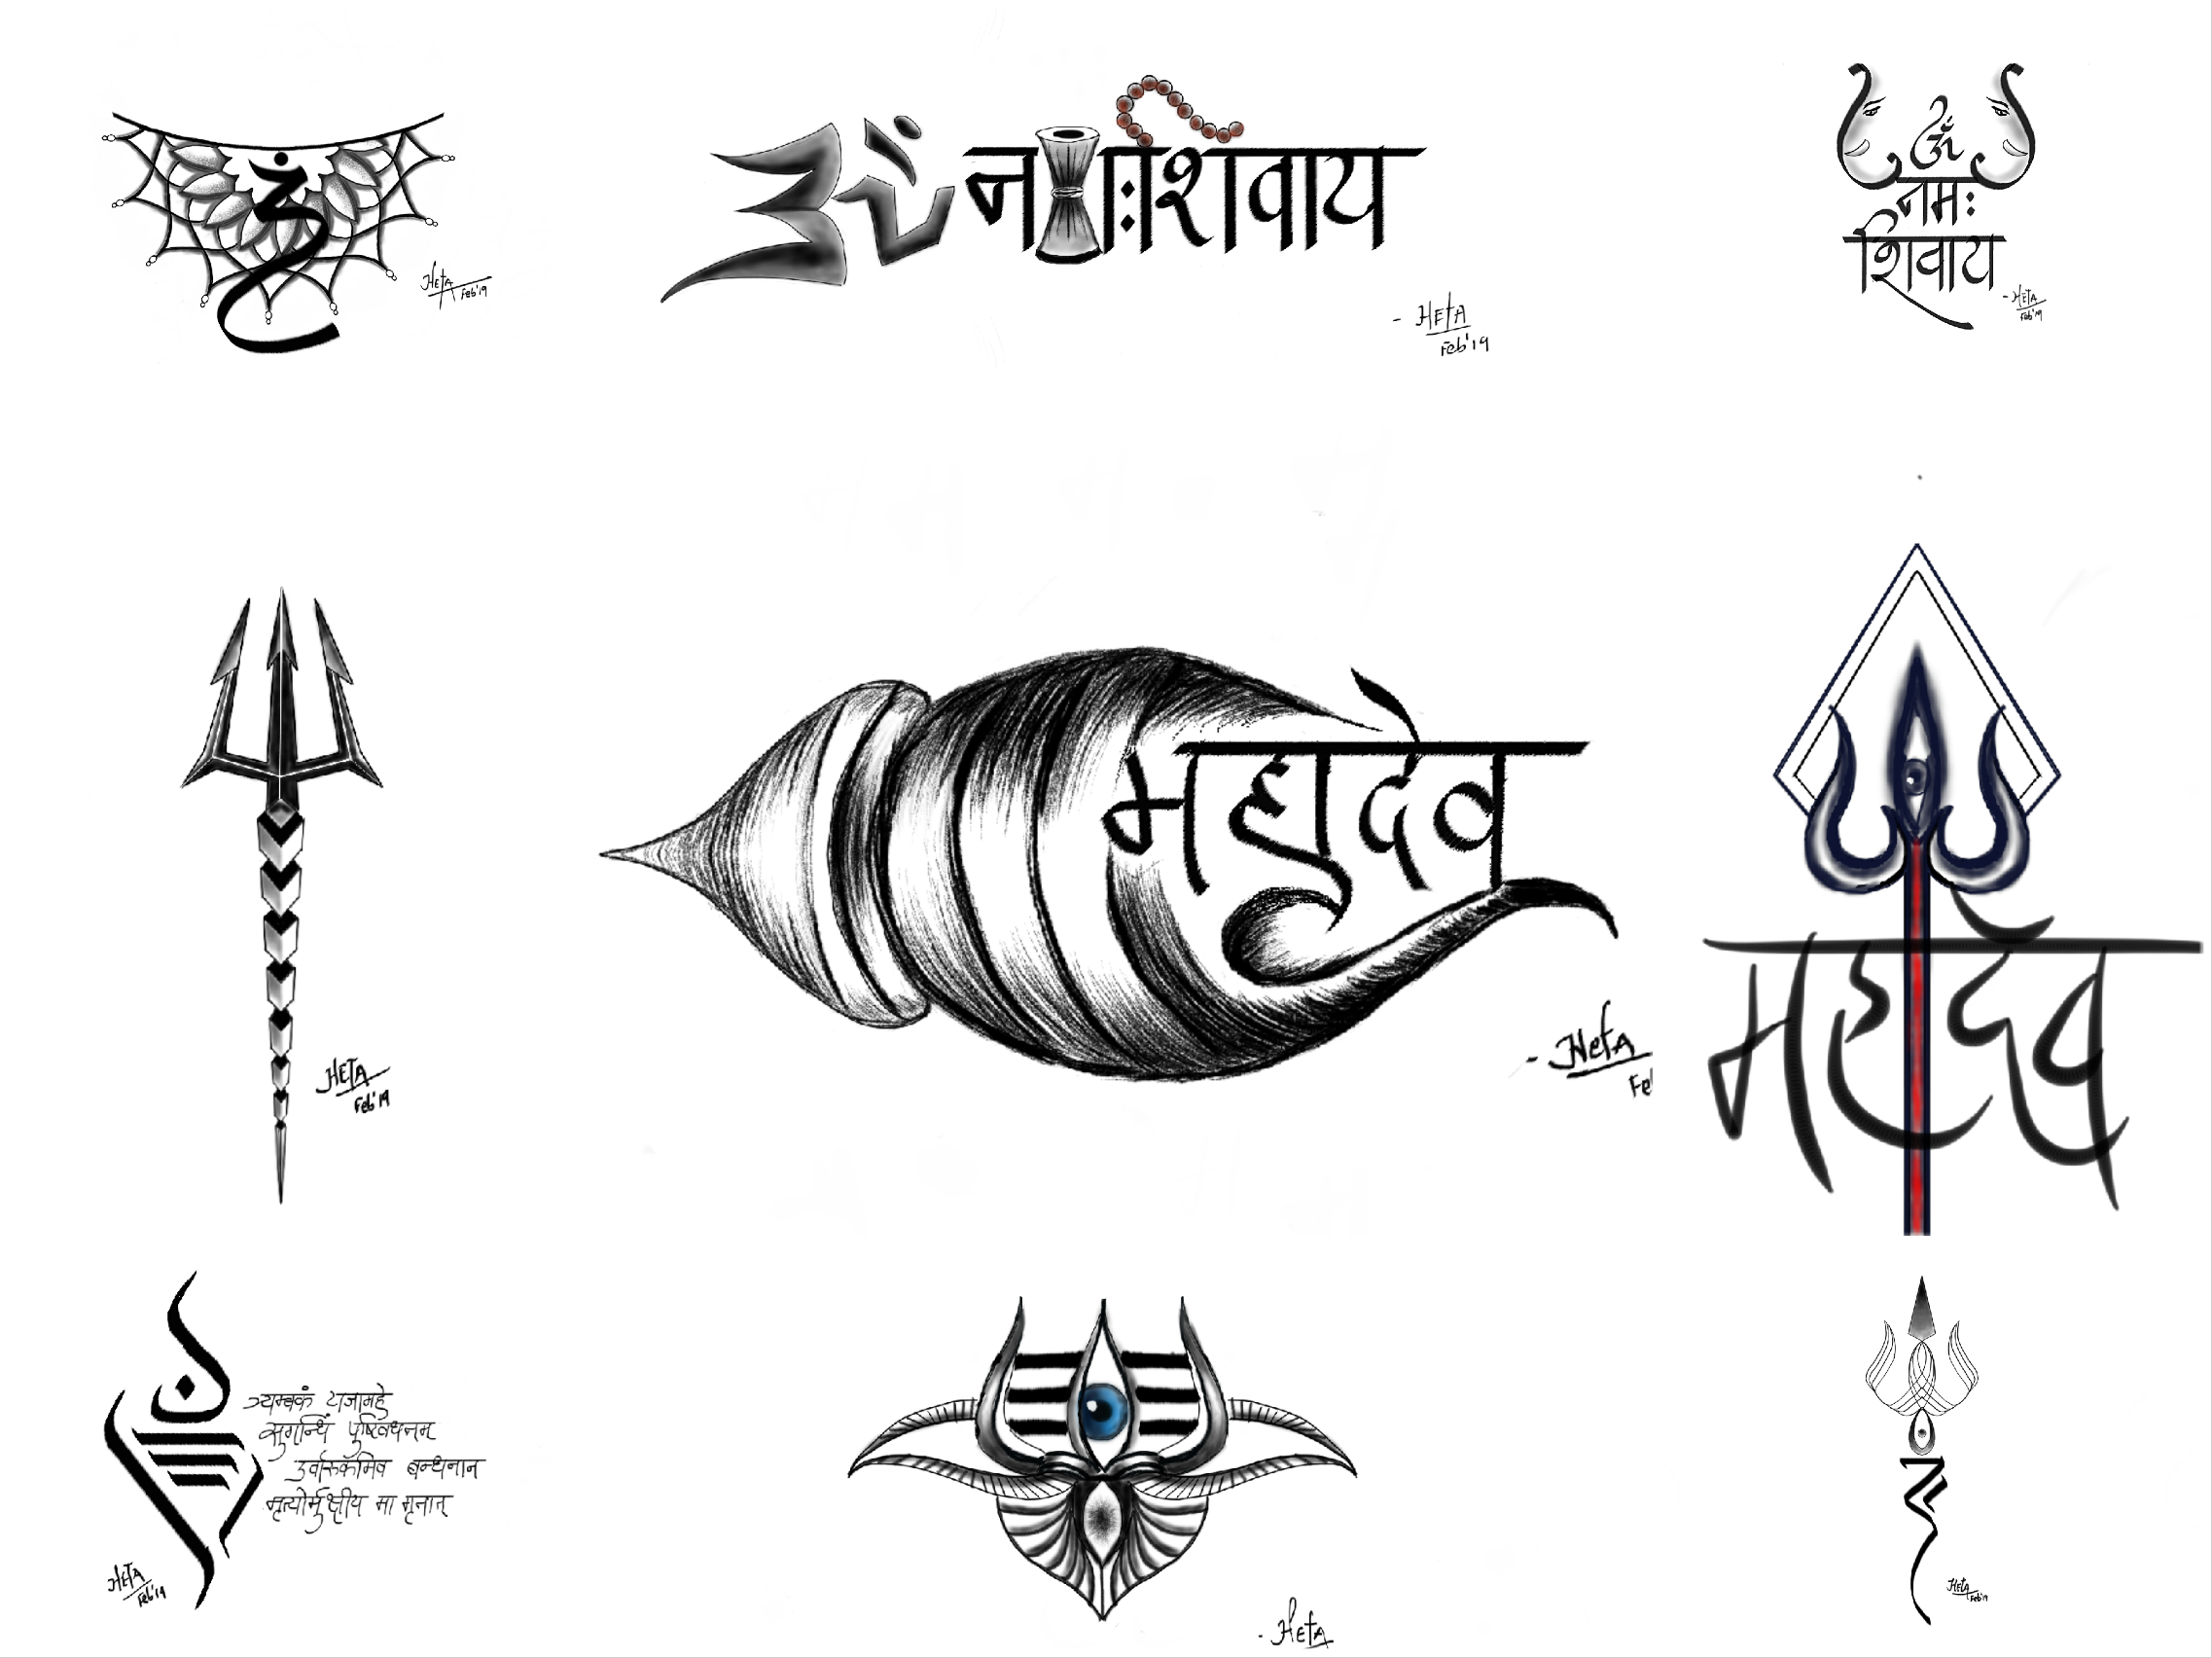 Pin By Kennedy Patterson On Tattoo Designs Mahadev Tattoo Shiva Tattoo Design Trishul Tattoo Designs